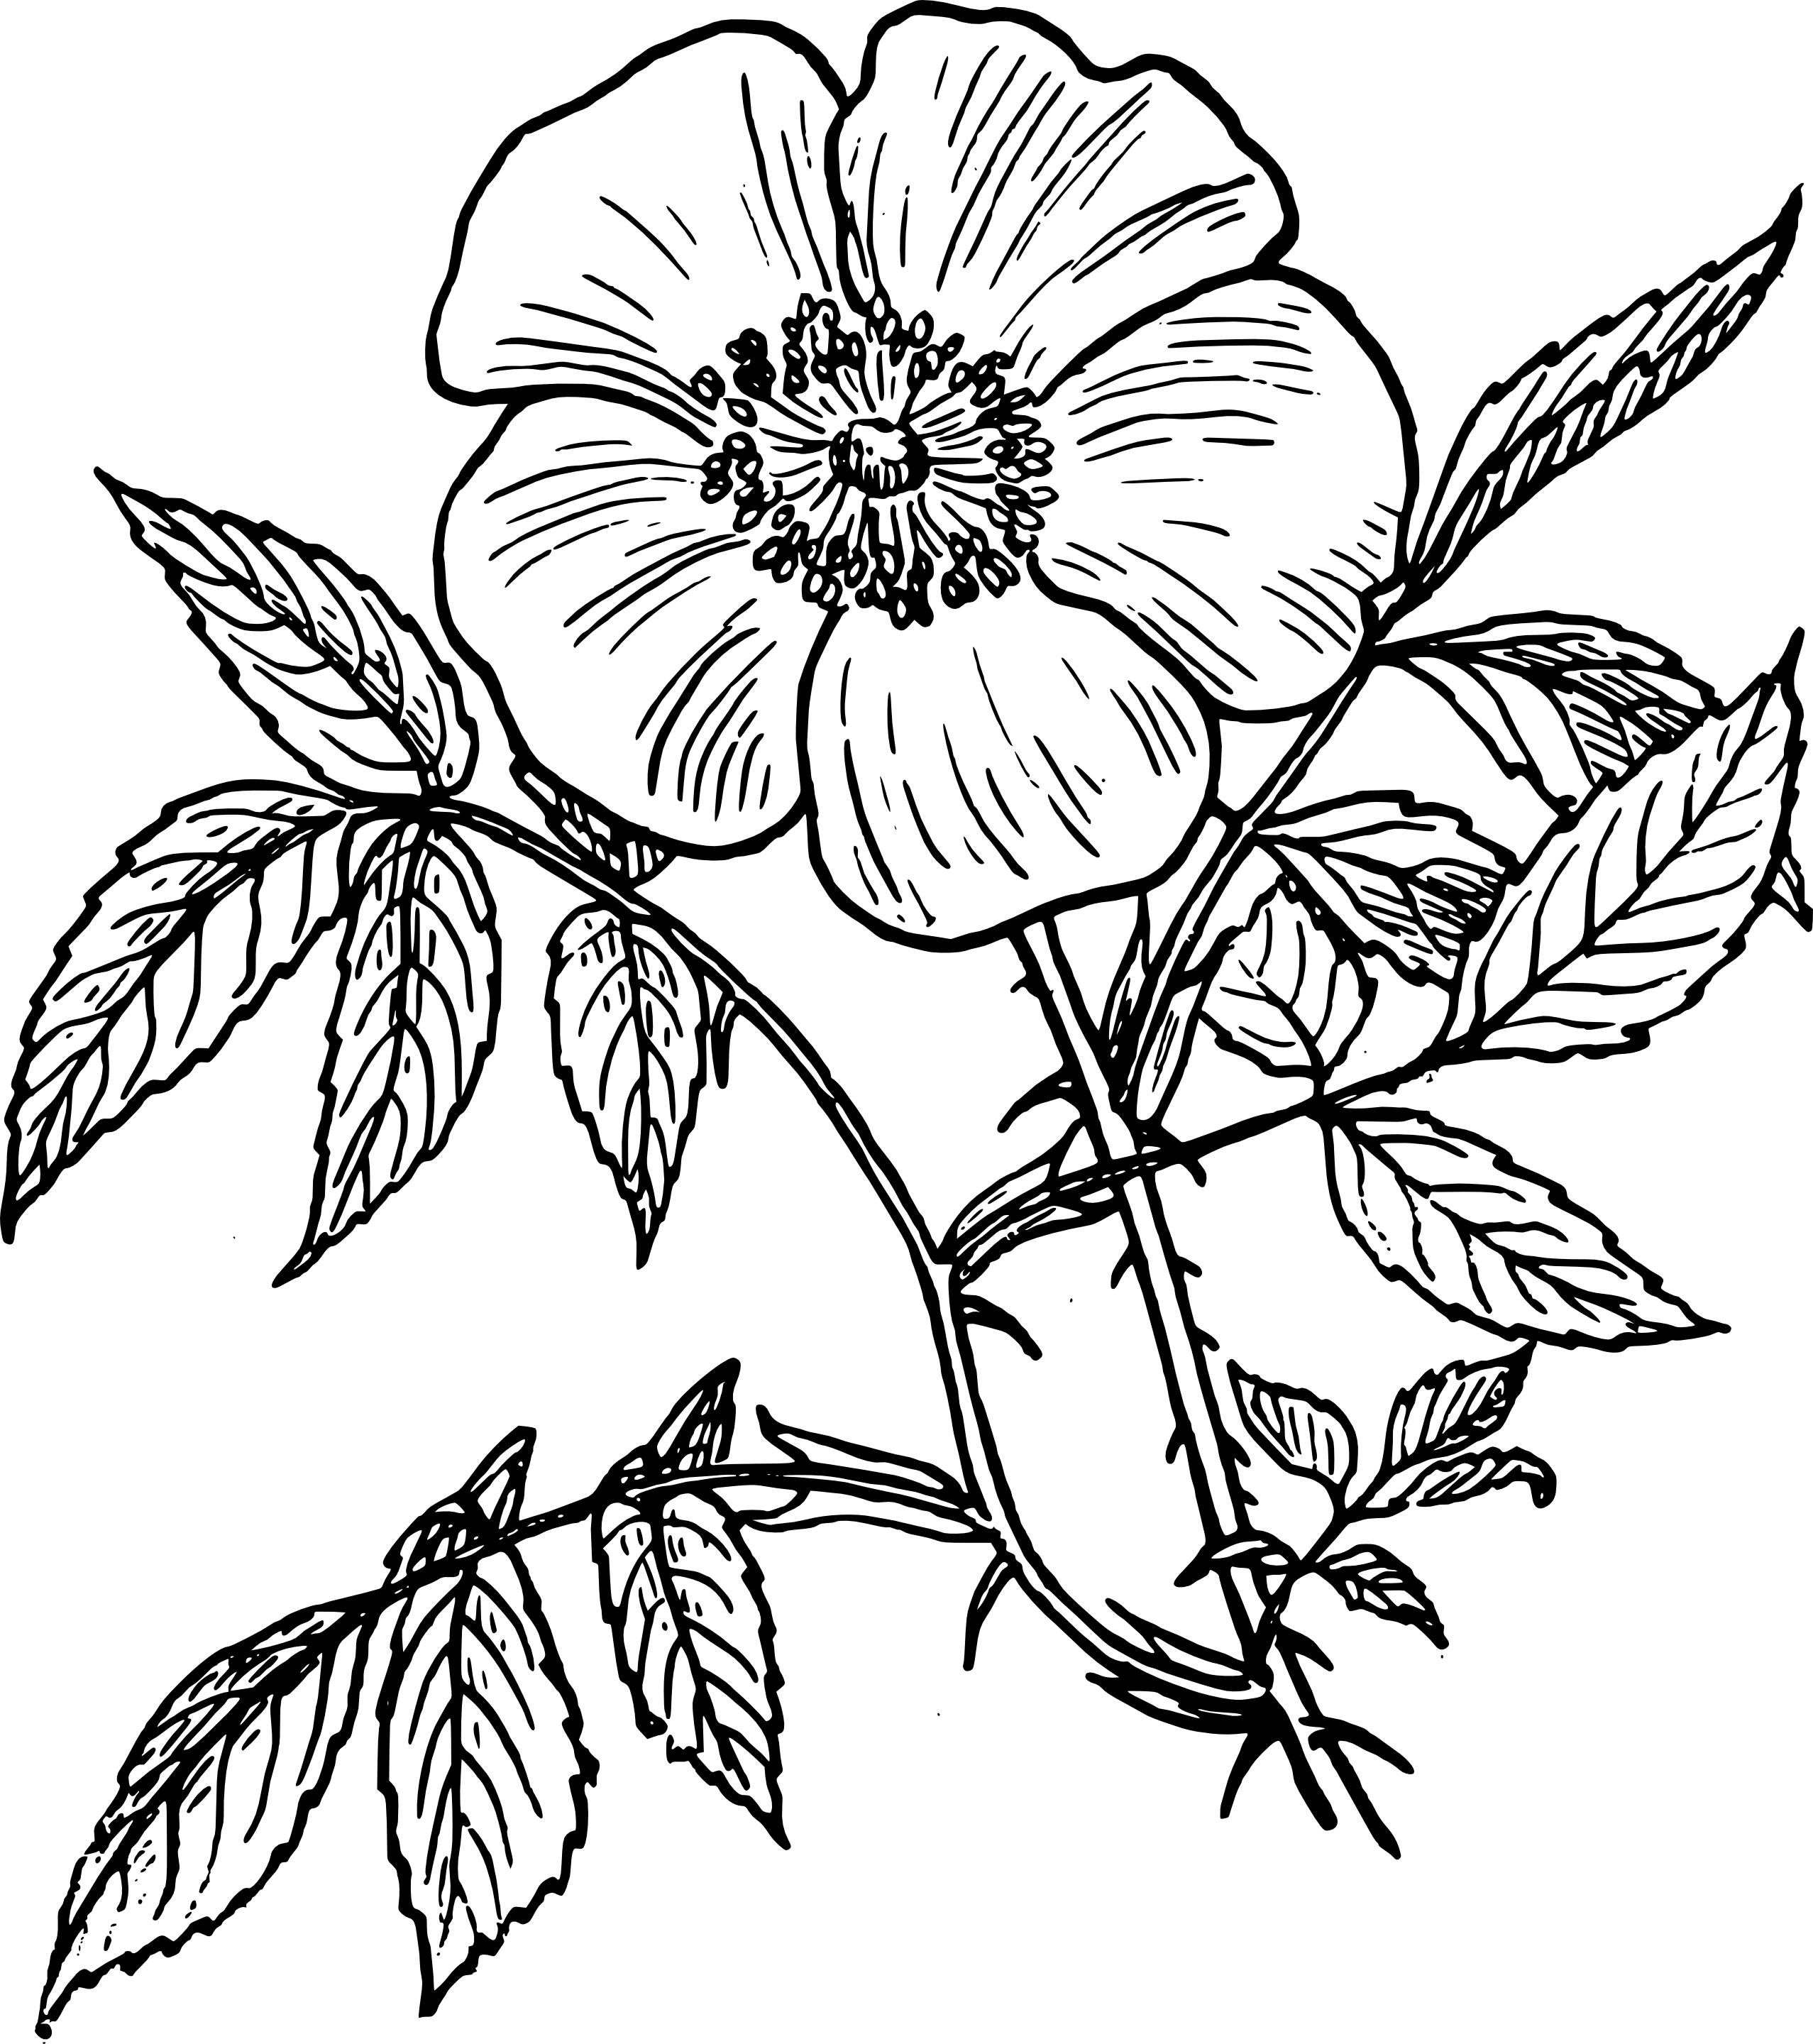 Line Drawing Rose Flower : Rose line drawing clipart best